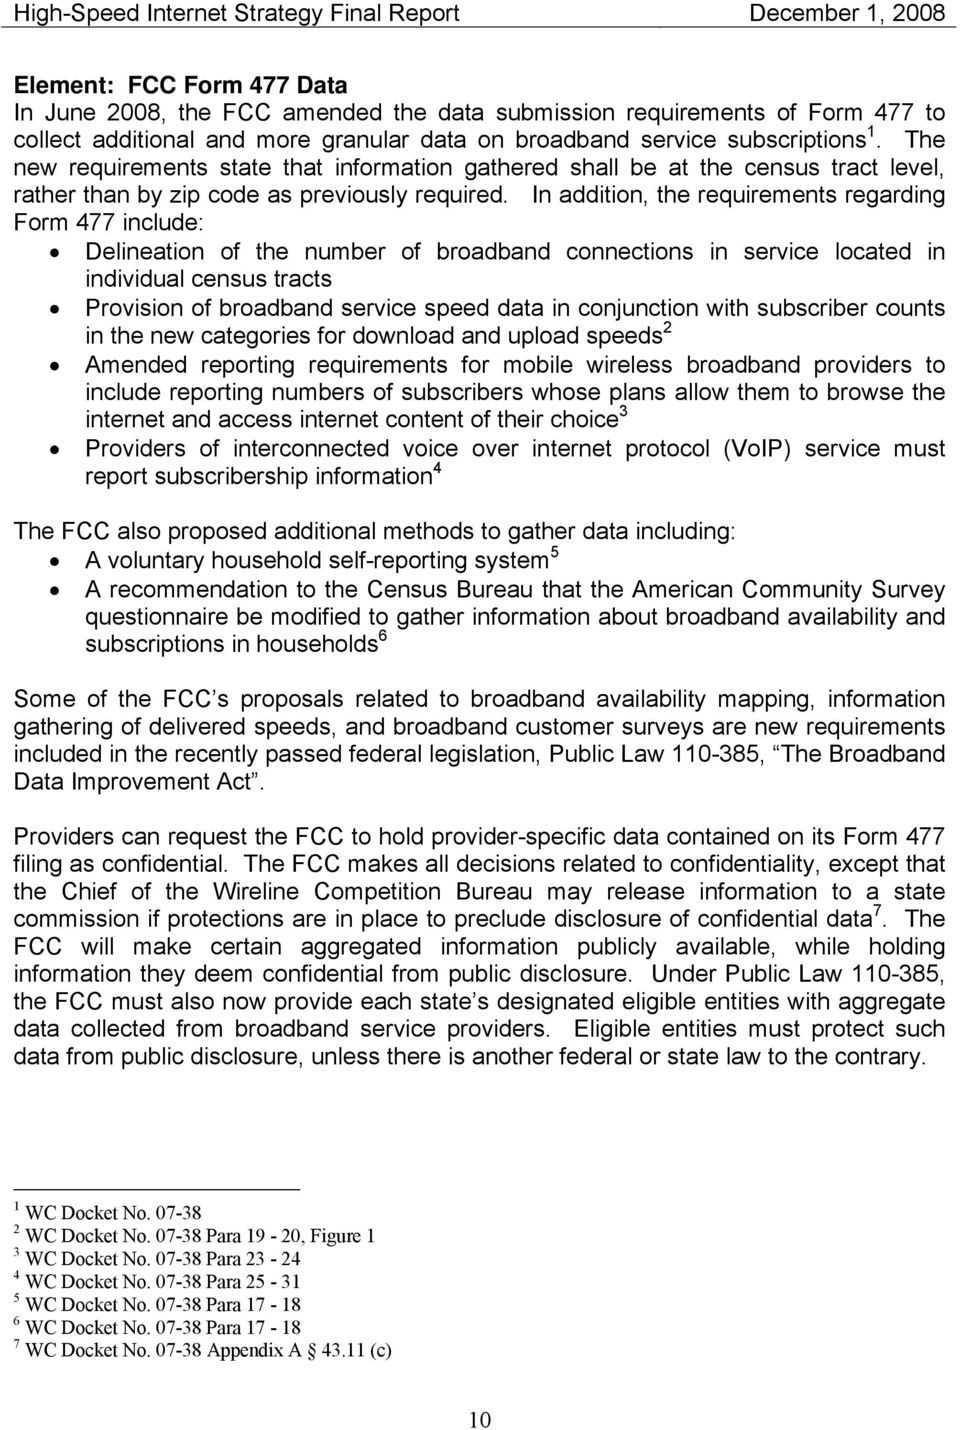 In addition, the requirements regarding Form 477 include: Delineation of the number of broadband connections in service located in individual census tracts Provision of broadband service speed data